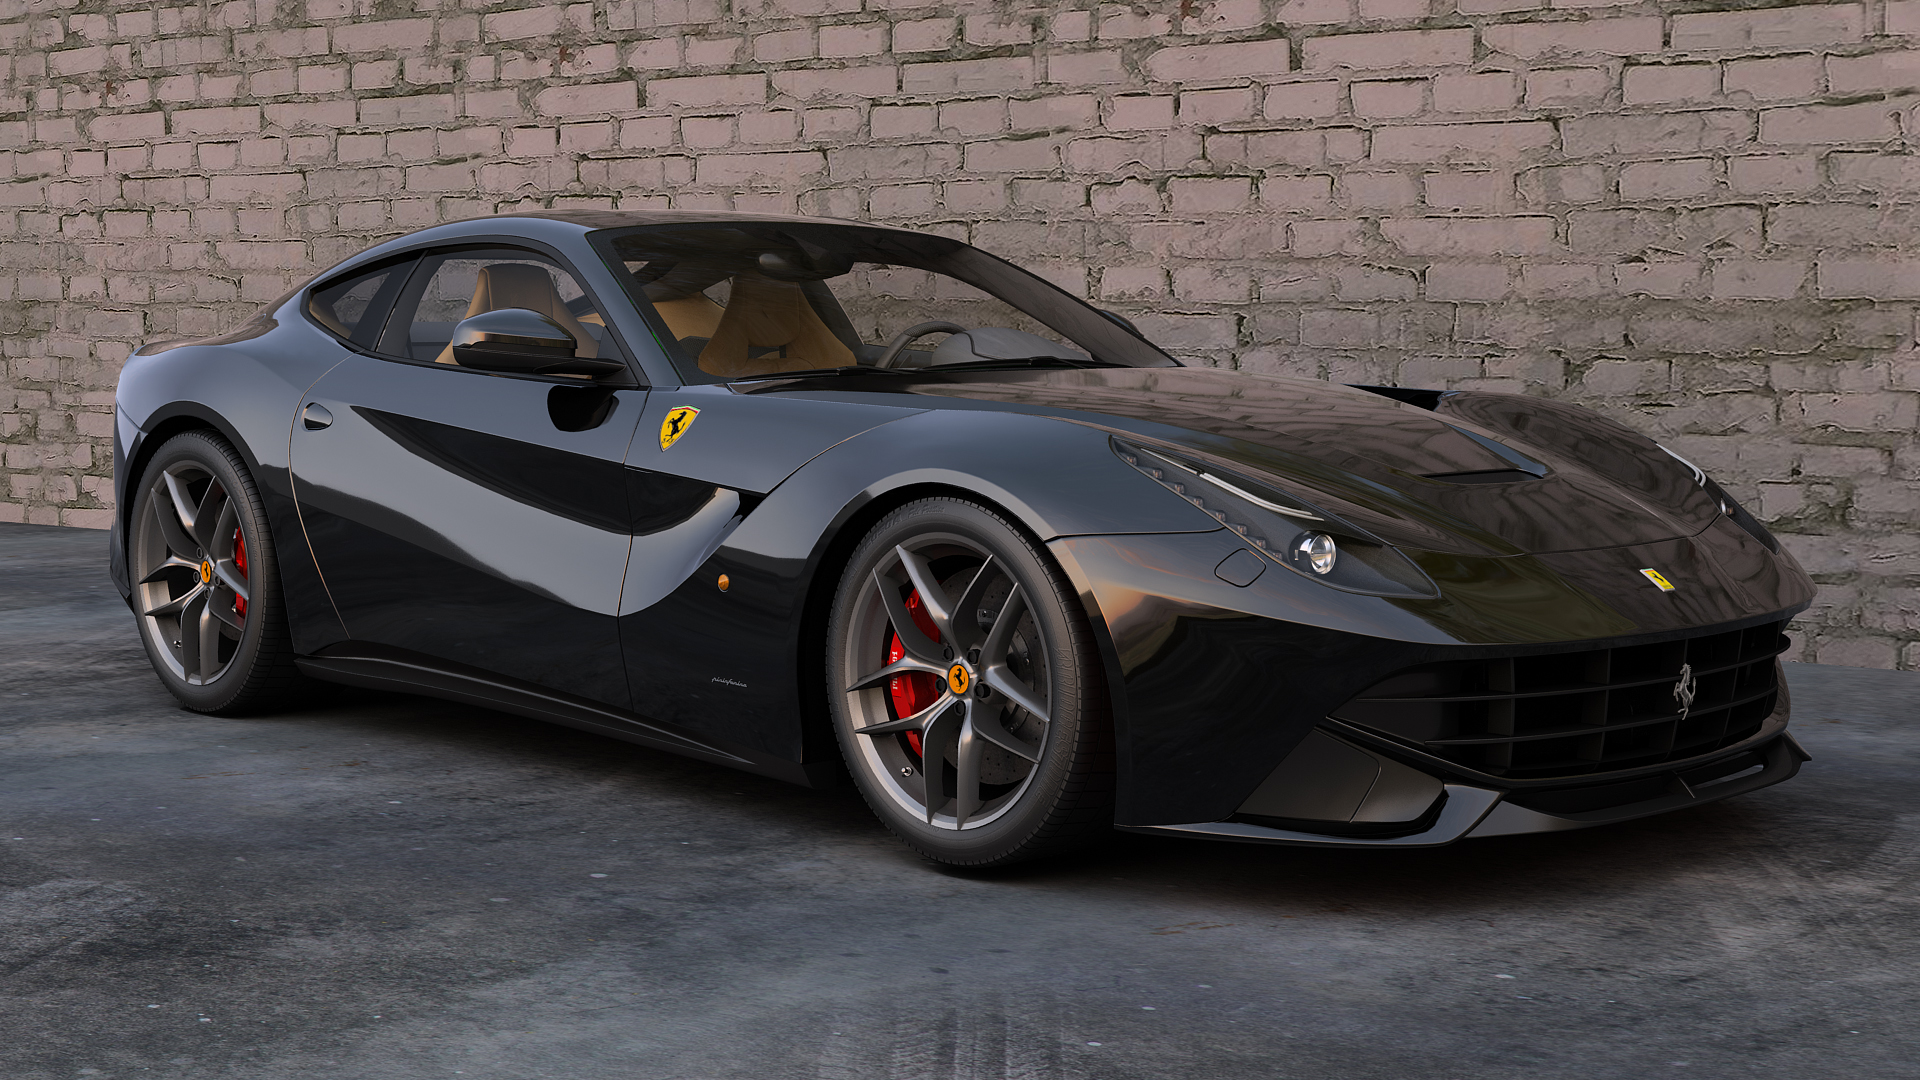 Ferrari F Berlinetta Wallpaper Wp6002099 Ferrari F12 Berlinetta 6 3 V12 1920x1080 Download Hd Wallpaper Wallpapertip